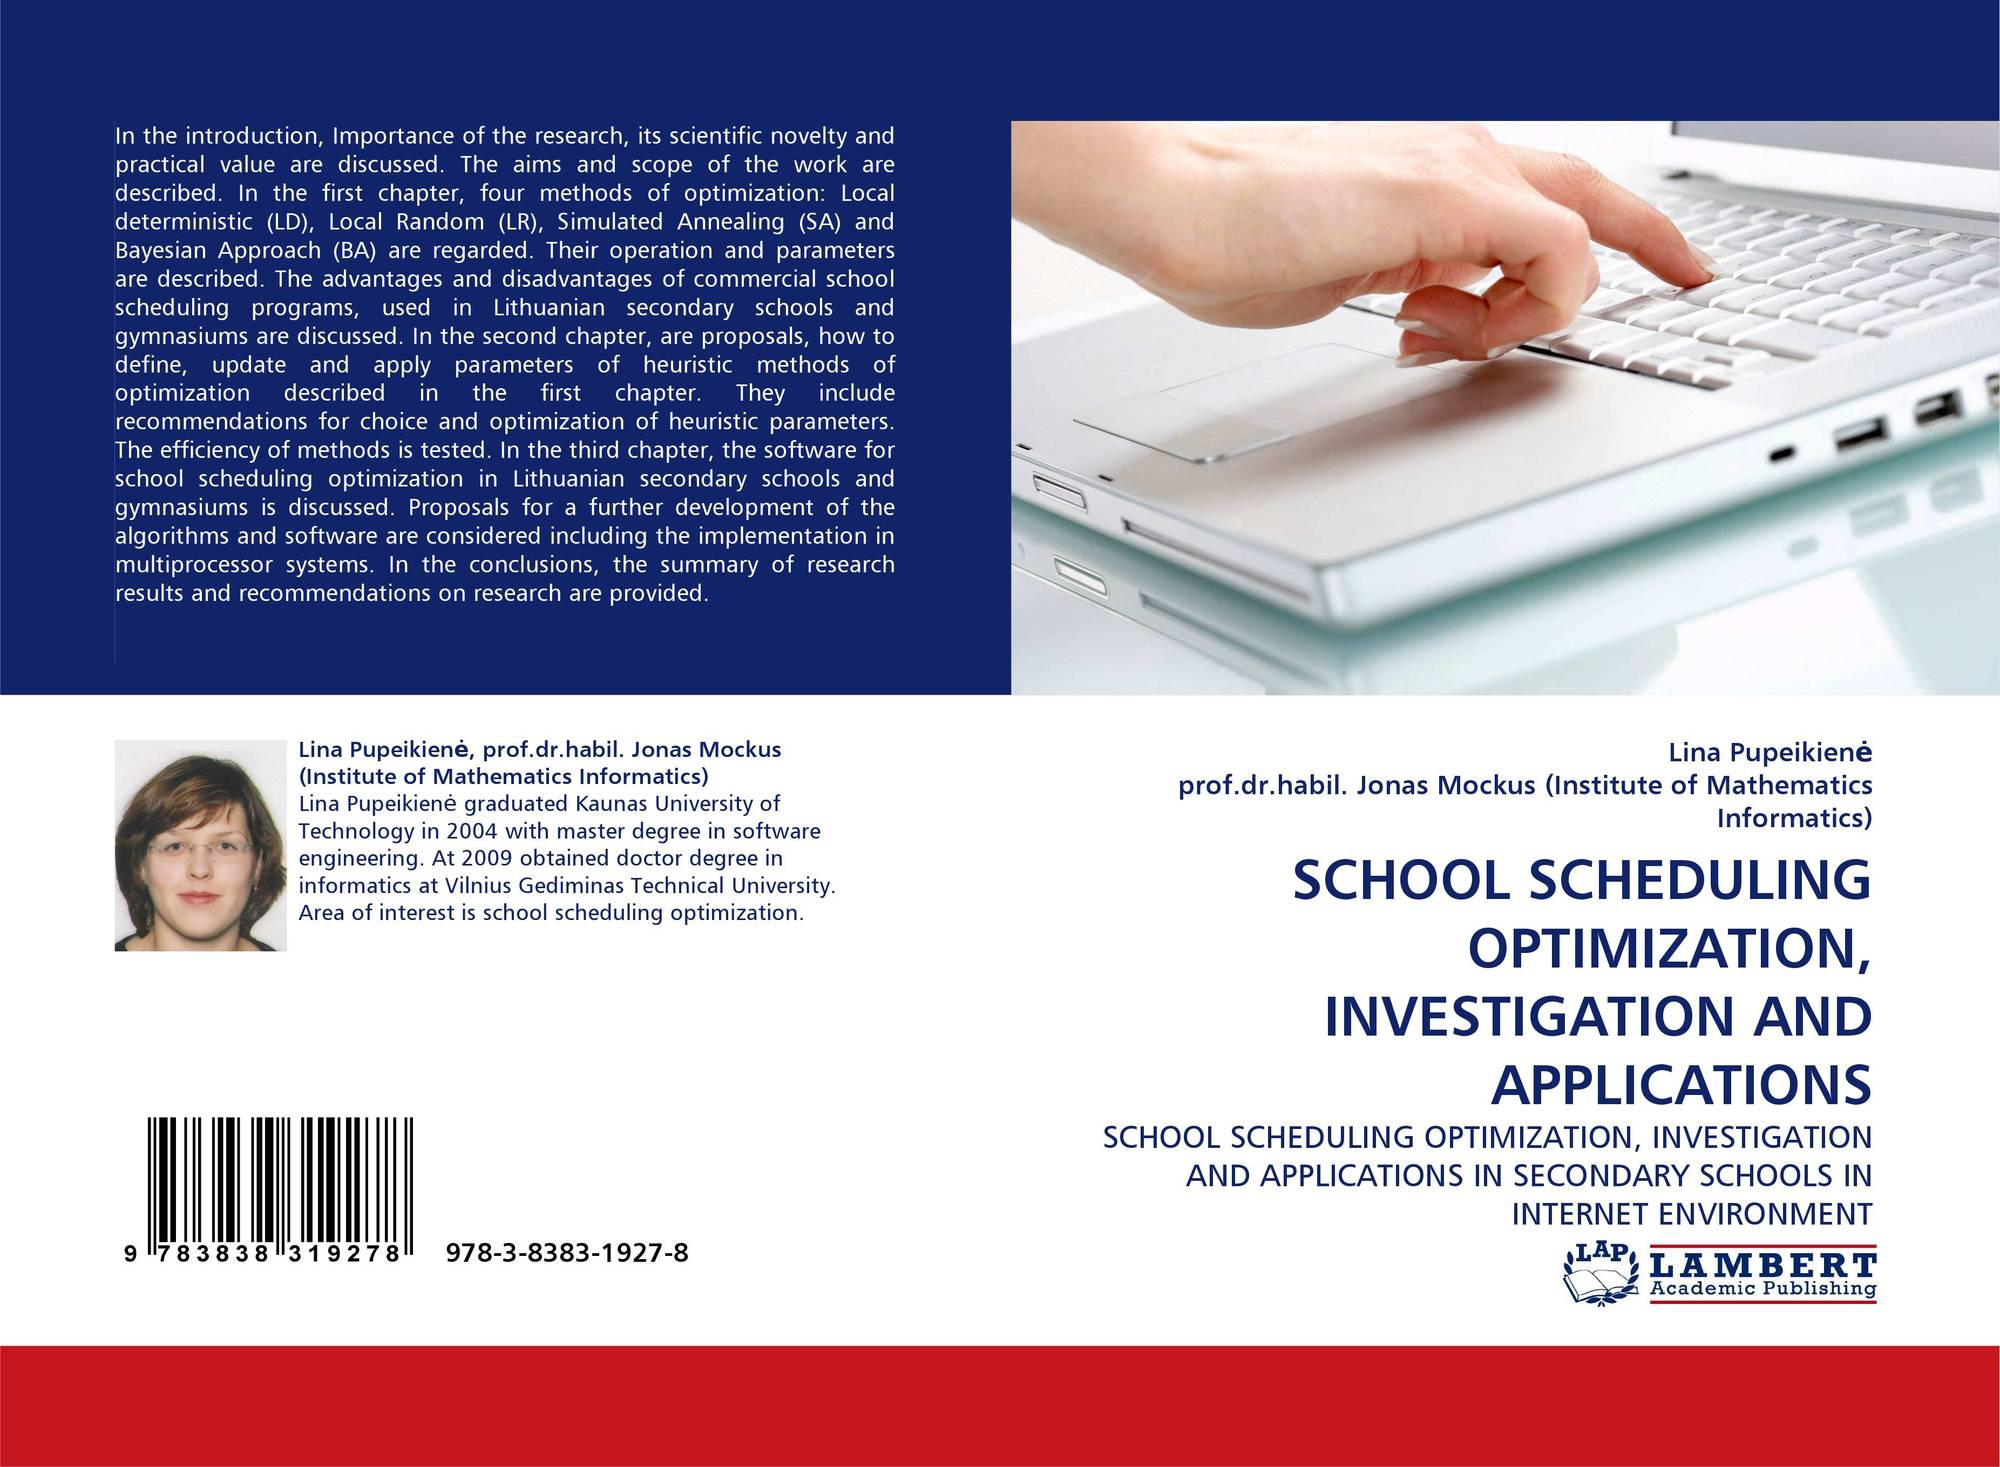 School Scheduling Optimization, Investigation And. Printing Companies Atlanta Who Does Va Loans. How To Sell Clothing On Ebay Wayne Vo Tech. Divorce Lawyers Richmond Va Do 160 Standard. Ontario Ohio High School Lincoln Hall Chicago. Medical Temporary Services Cost Of Lasik Eye. Build Cloud Application Pest Control Bay Area. Regionsnet Online Banking V I P Consulting. How Is A Abortion Performed How To Write A